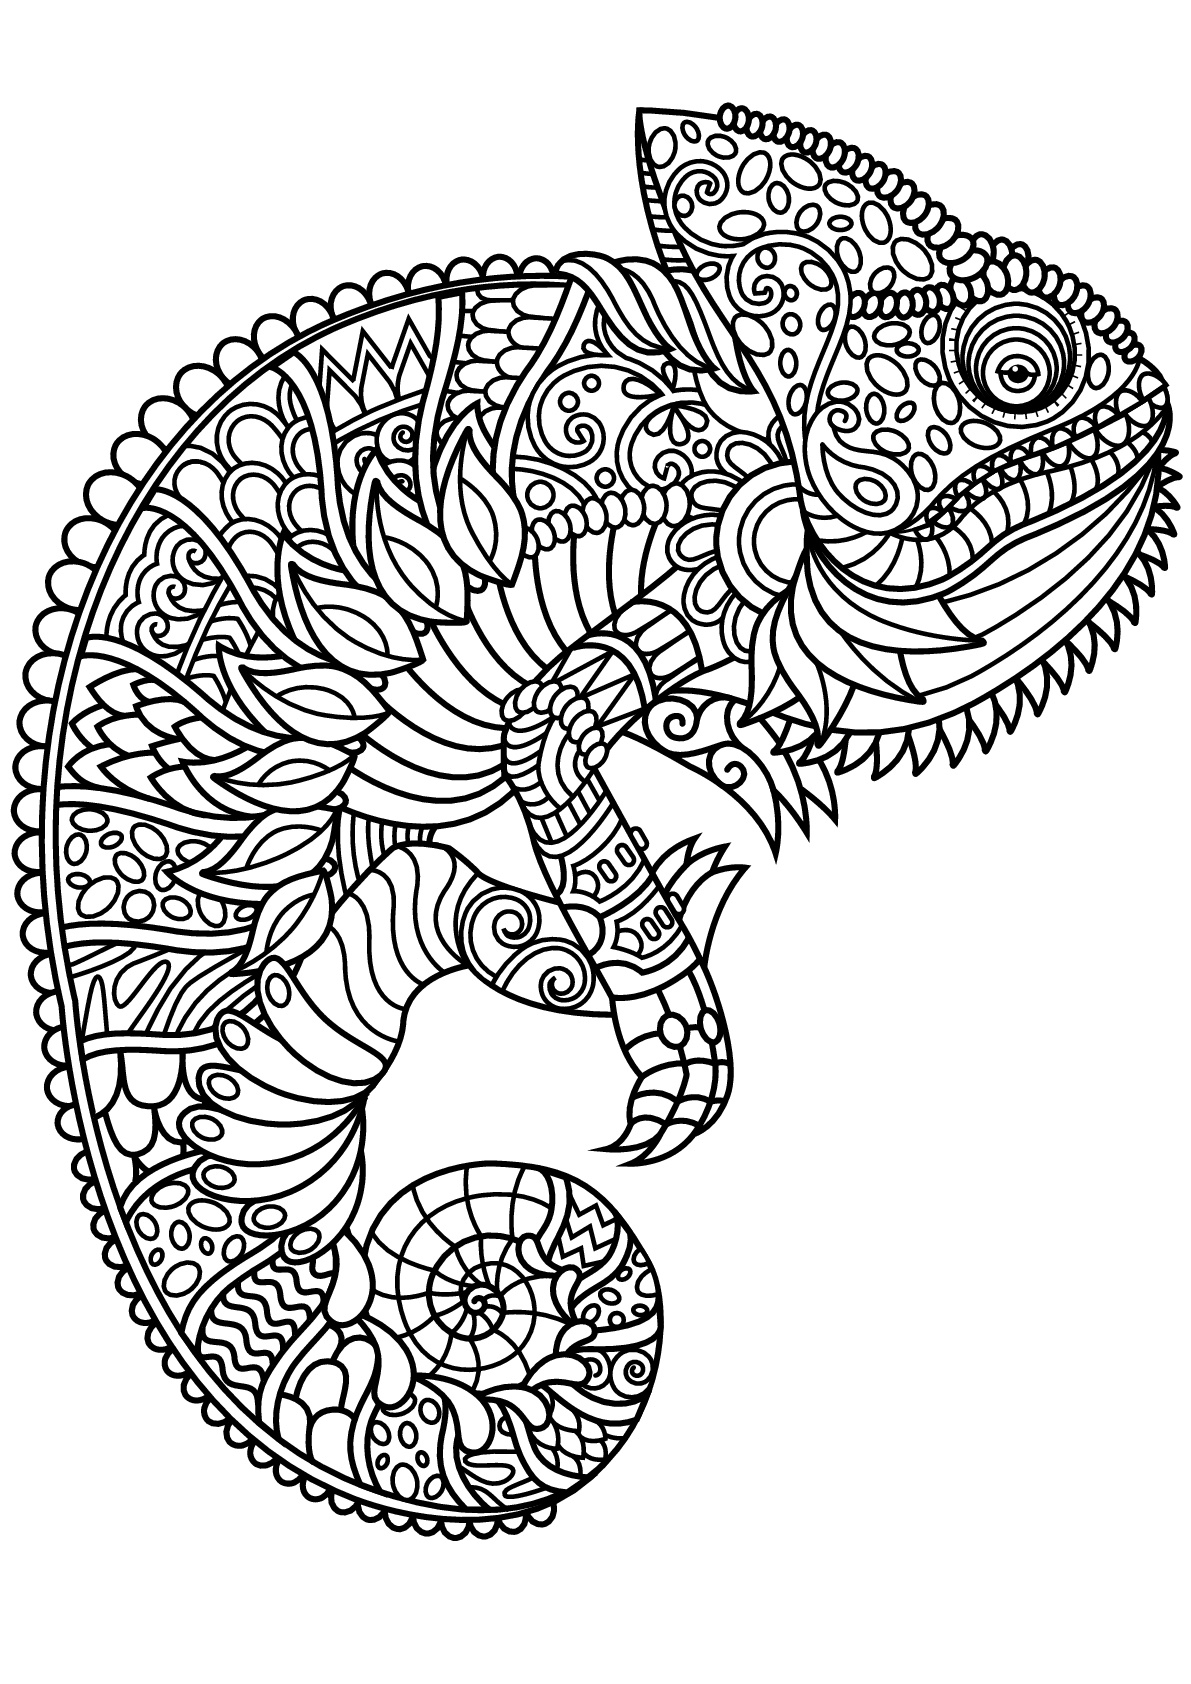 Chameleons and lizards - Coloring Pages for Adults